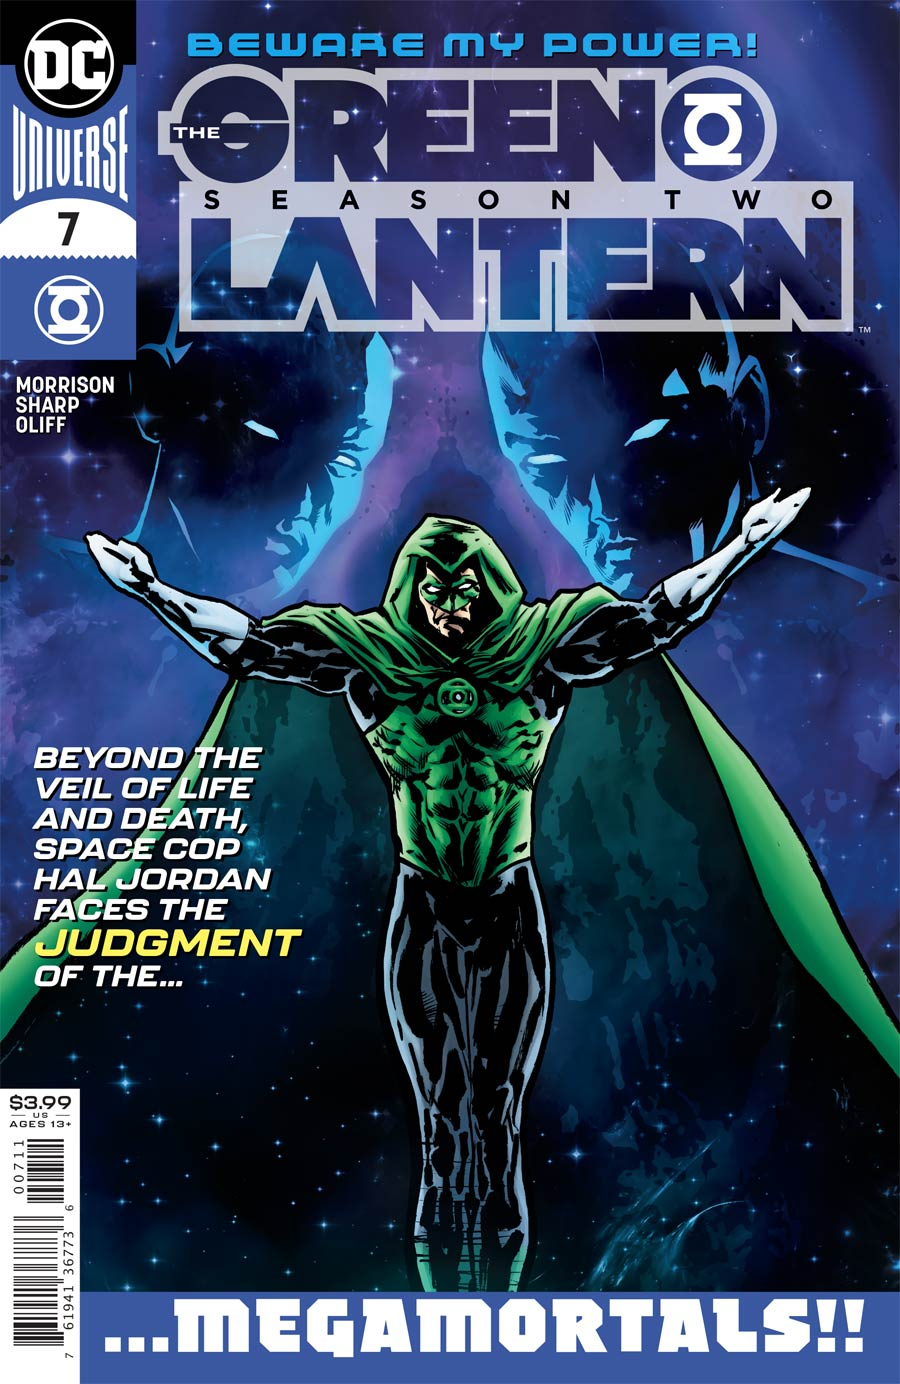 Green Lantern Vol 6 Season 2 #7 Cover A Regular Liam Sharp Cover